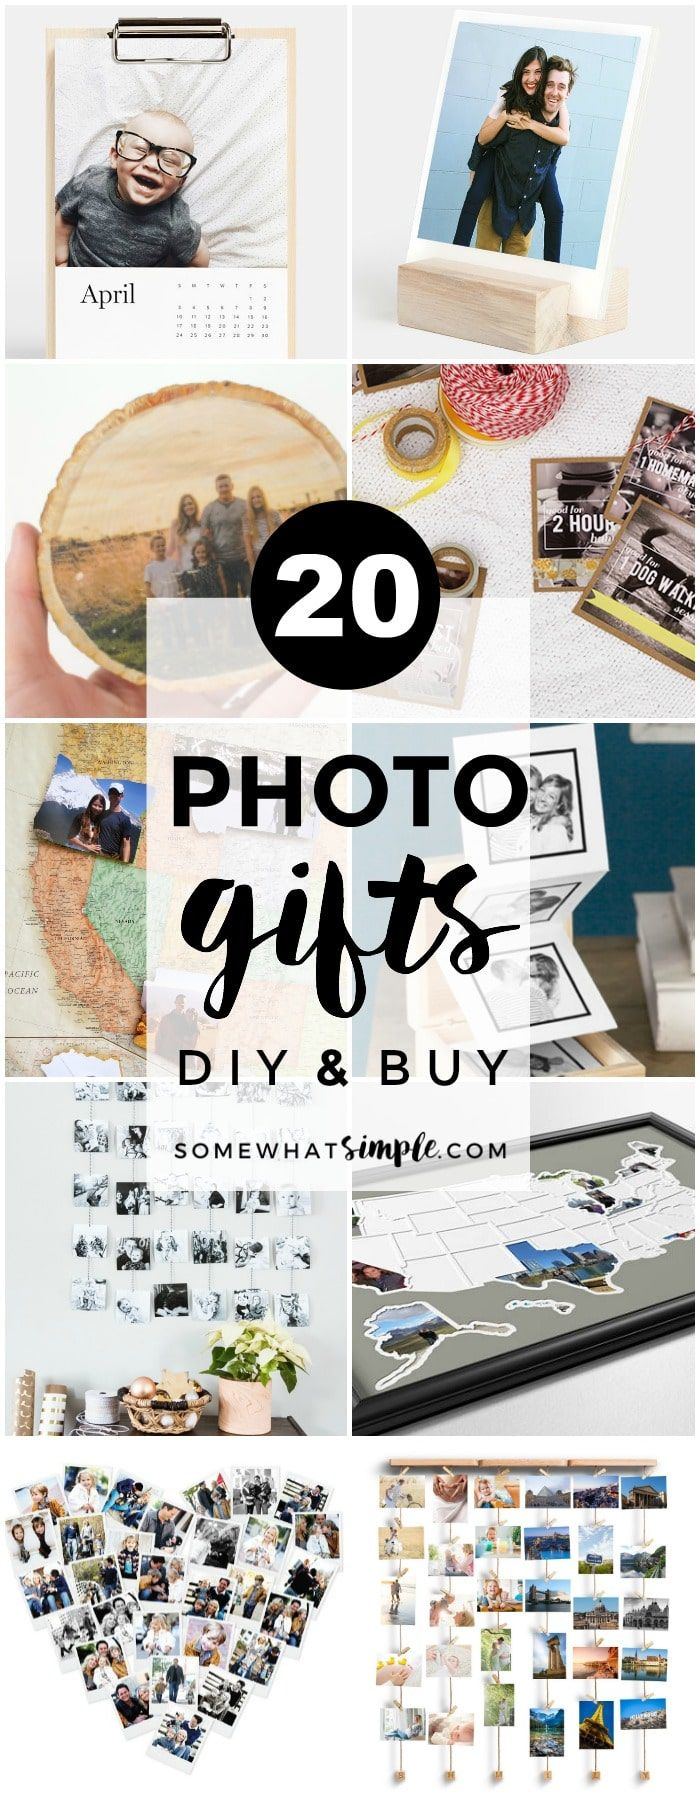 20 Favorite Photo Gifts | Personalized photo gifts are a fun and thoughtful way to share family photos and special memories with those you love!